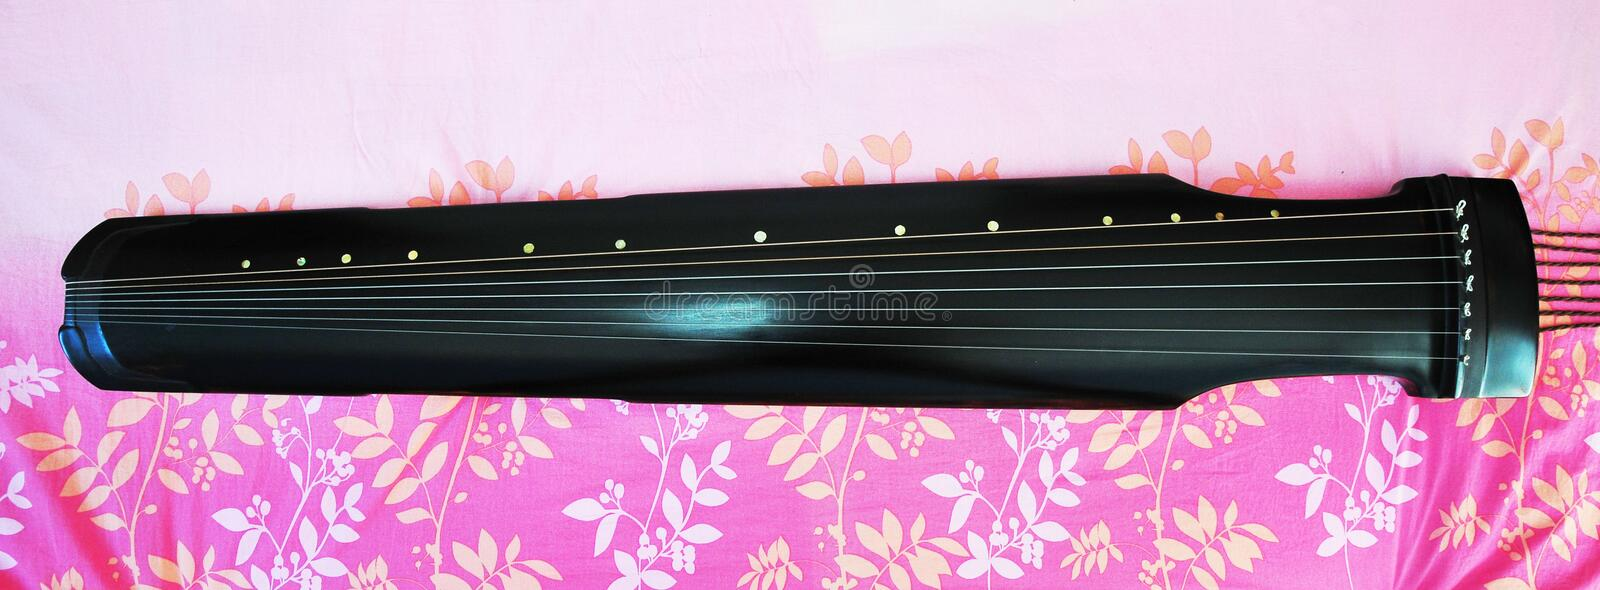 Instrument musical chinois antique photo stock